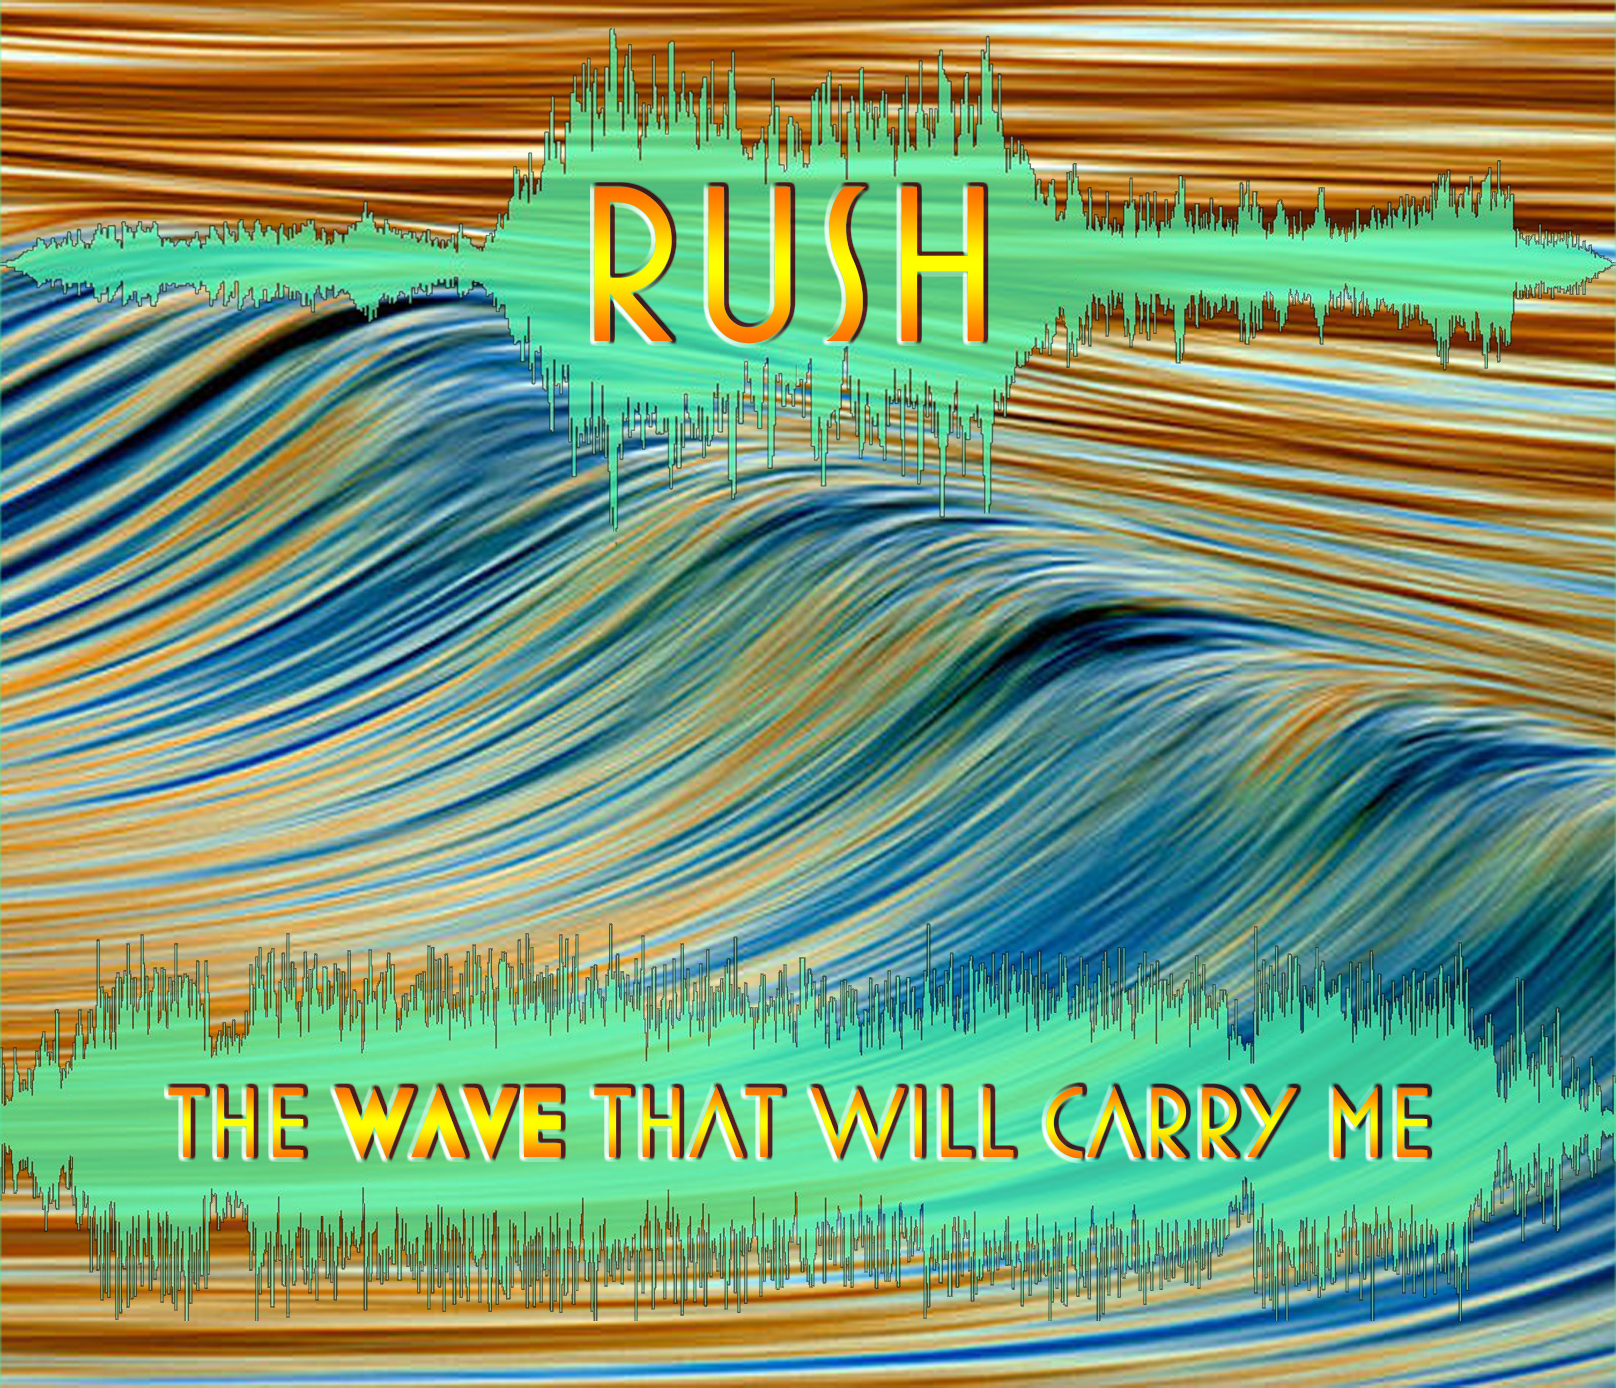 Rush - The WAVE That Will Carry Me